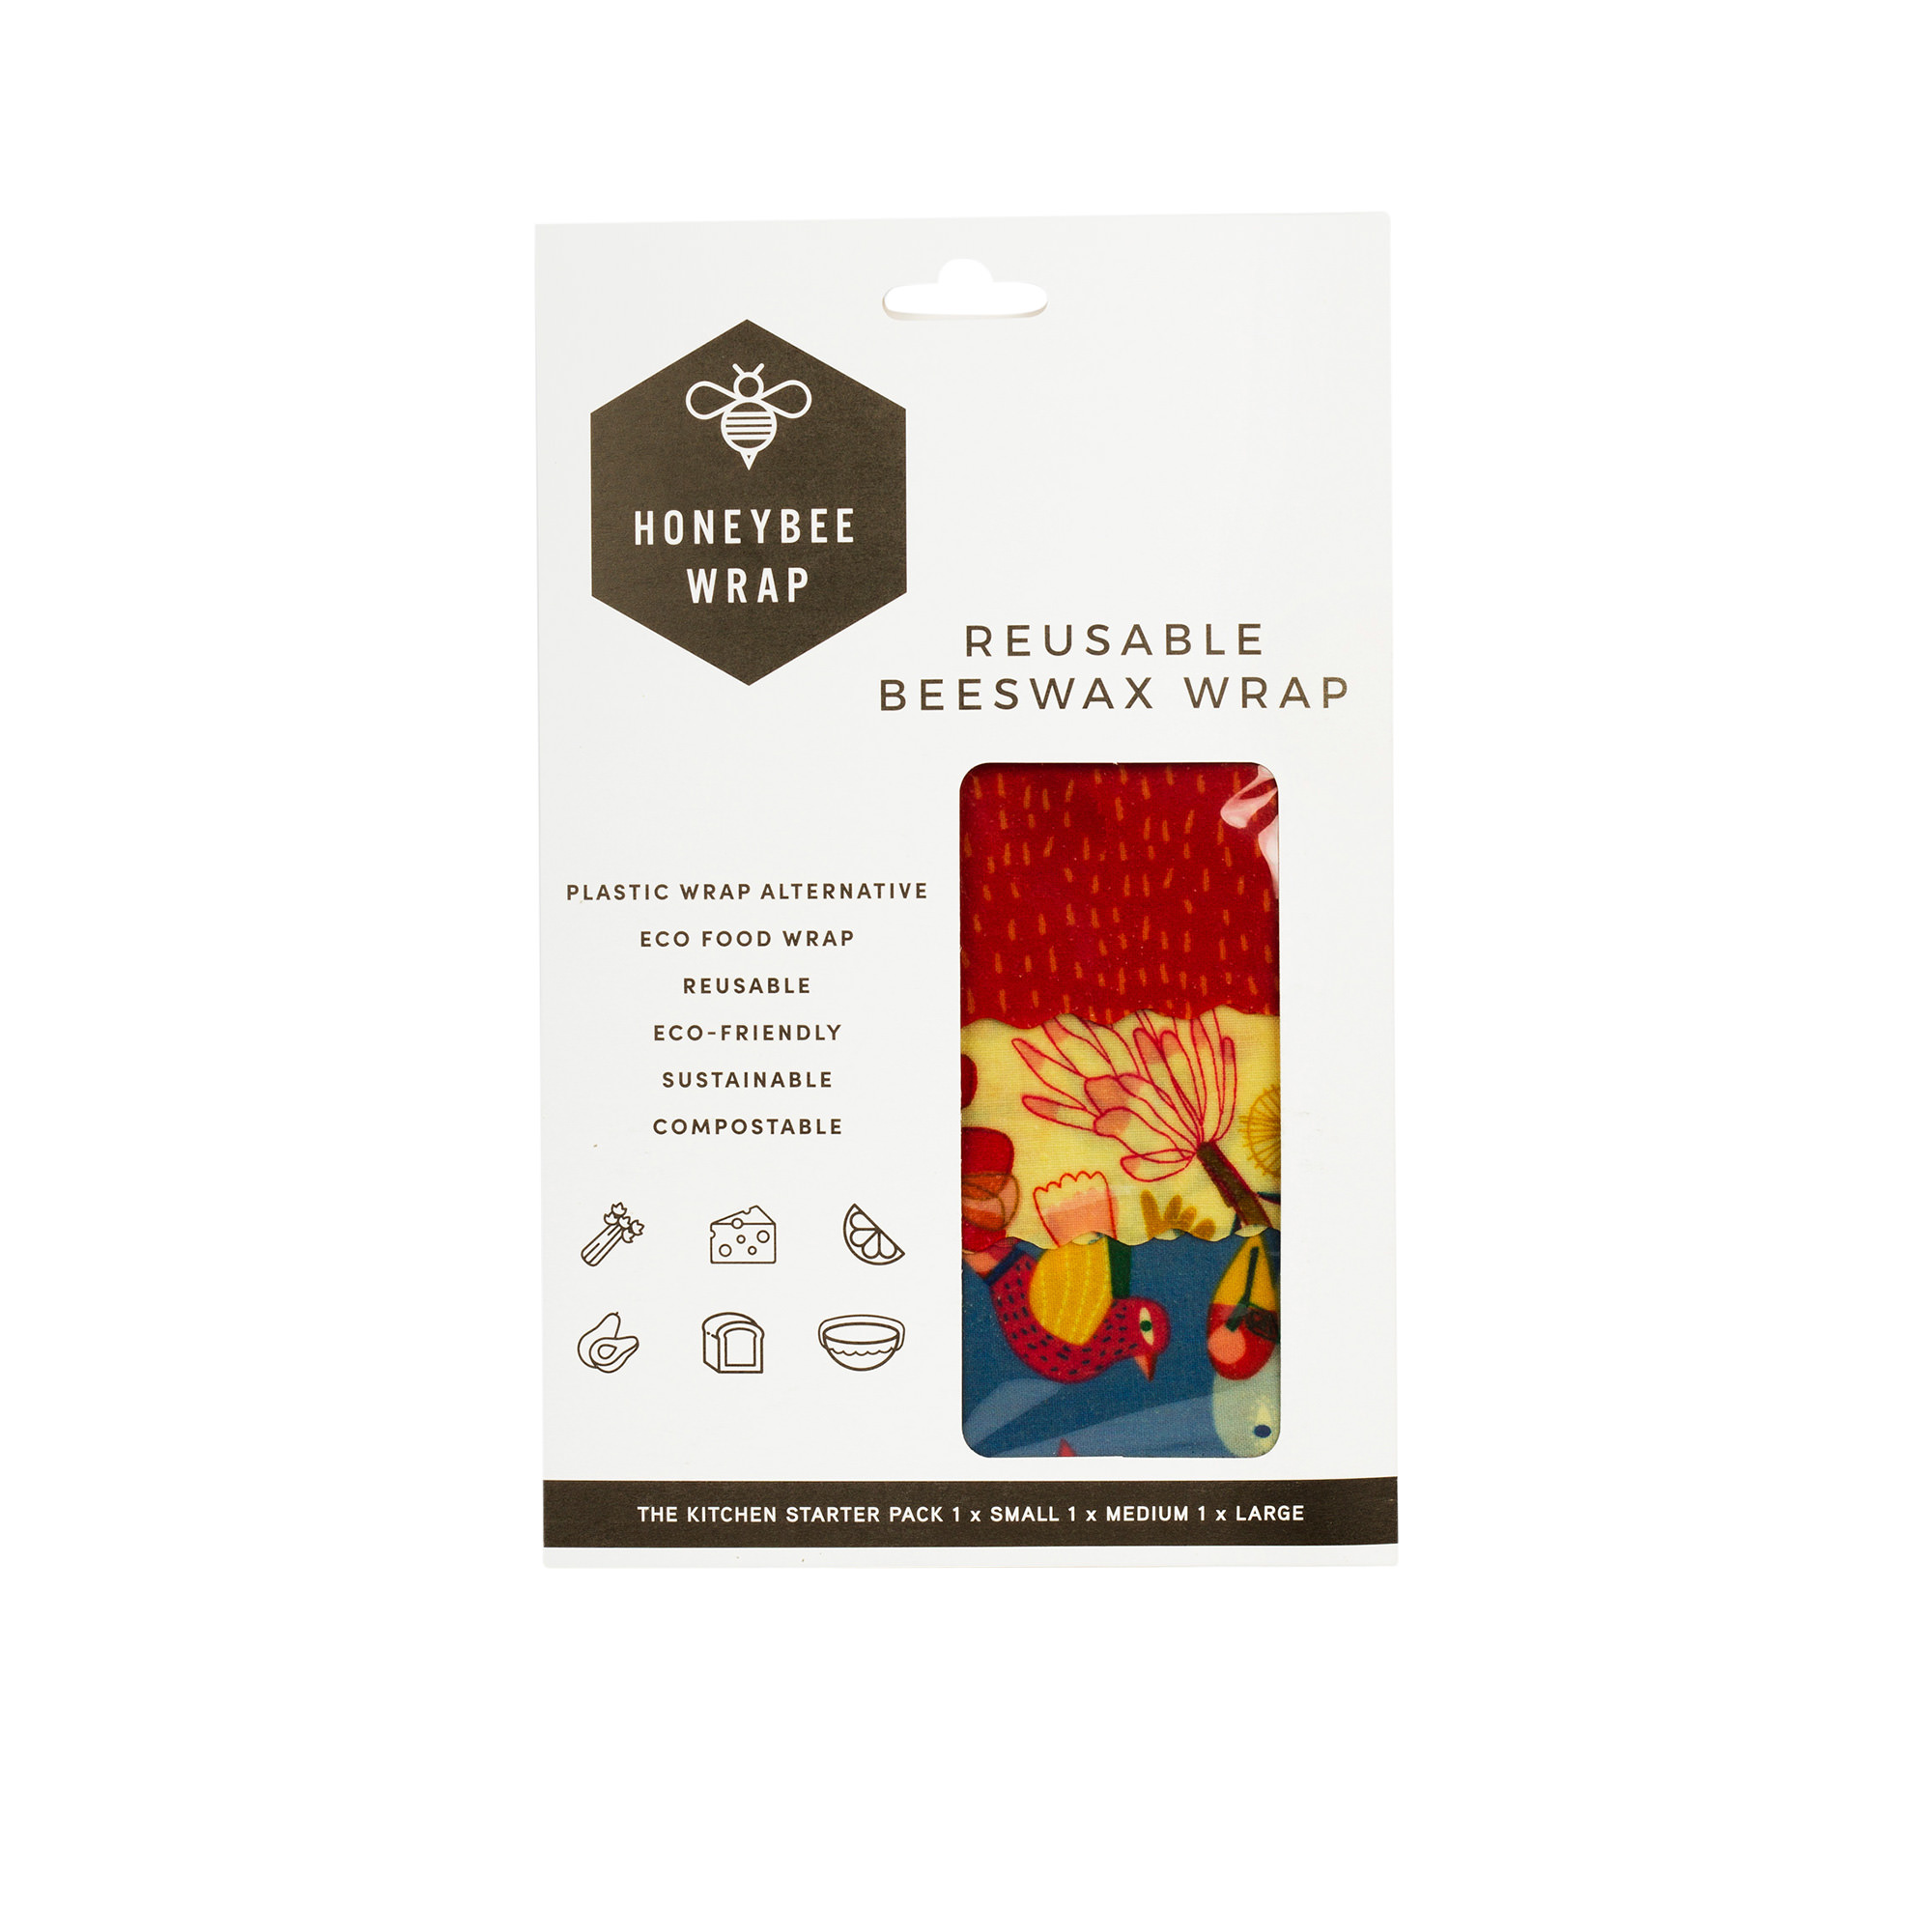 HoneyBee Wrap Reusable Beeswax Wraps 3 Pack